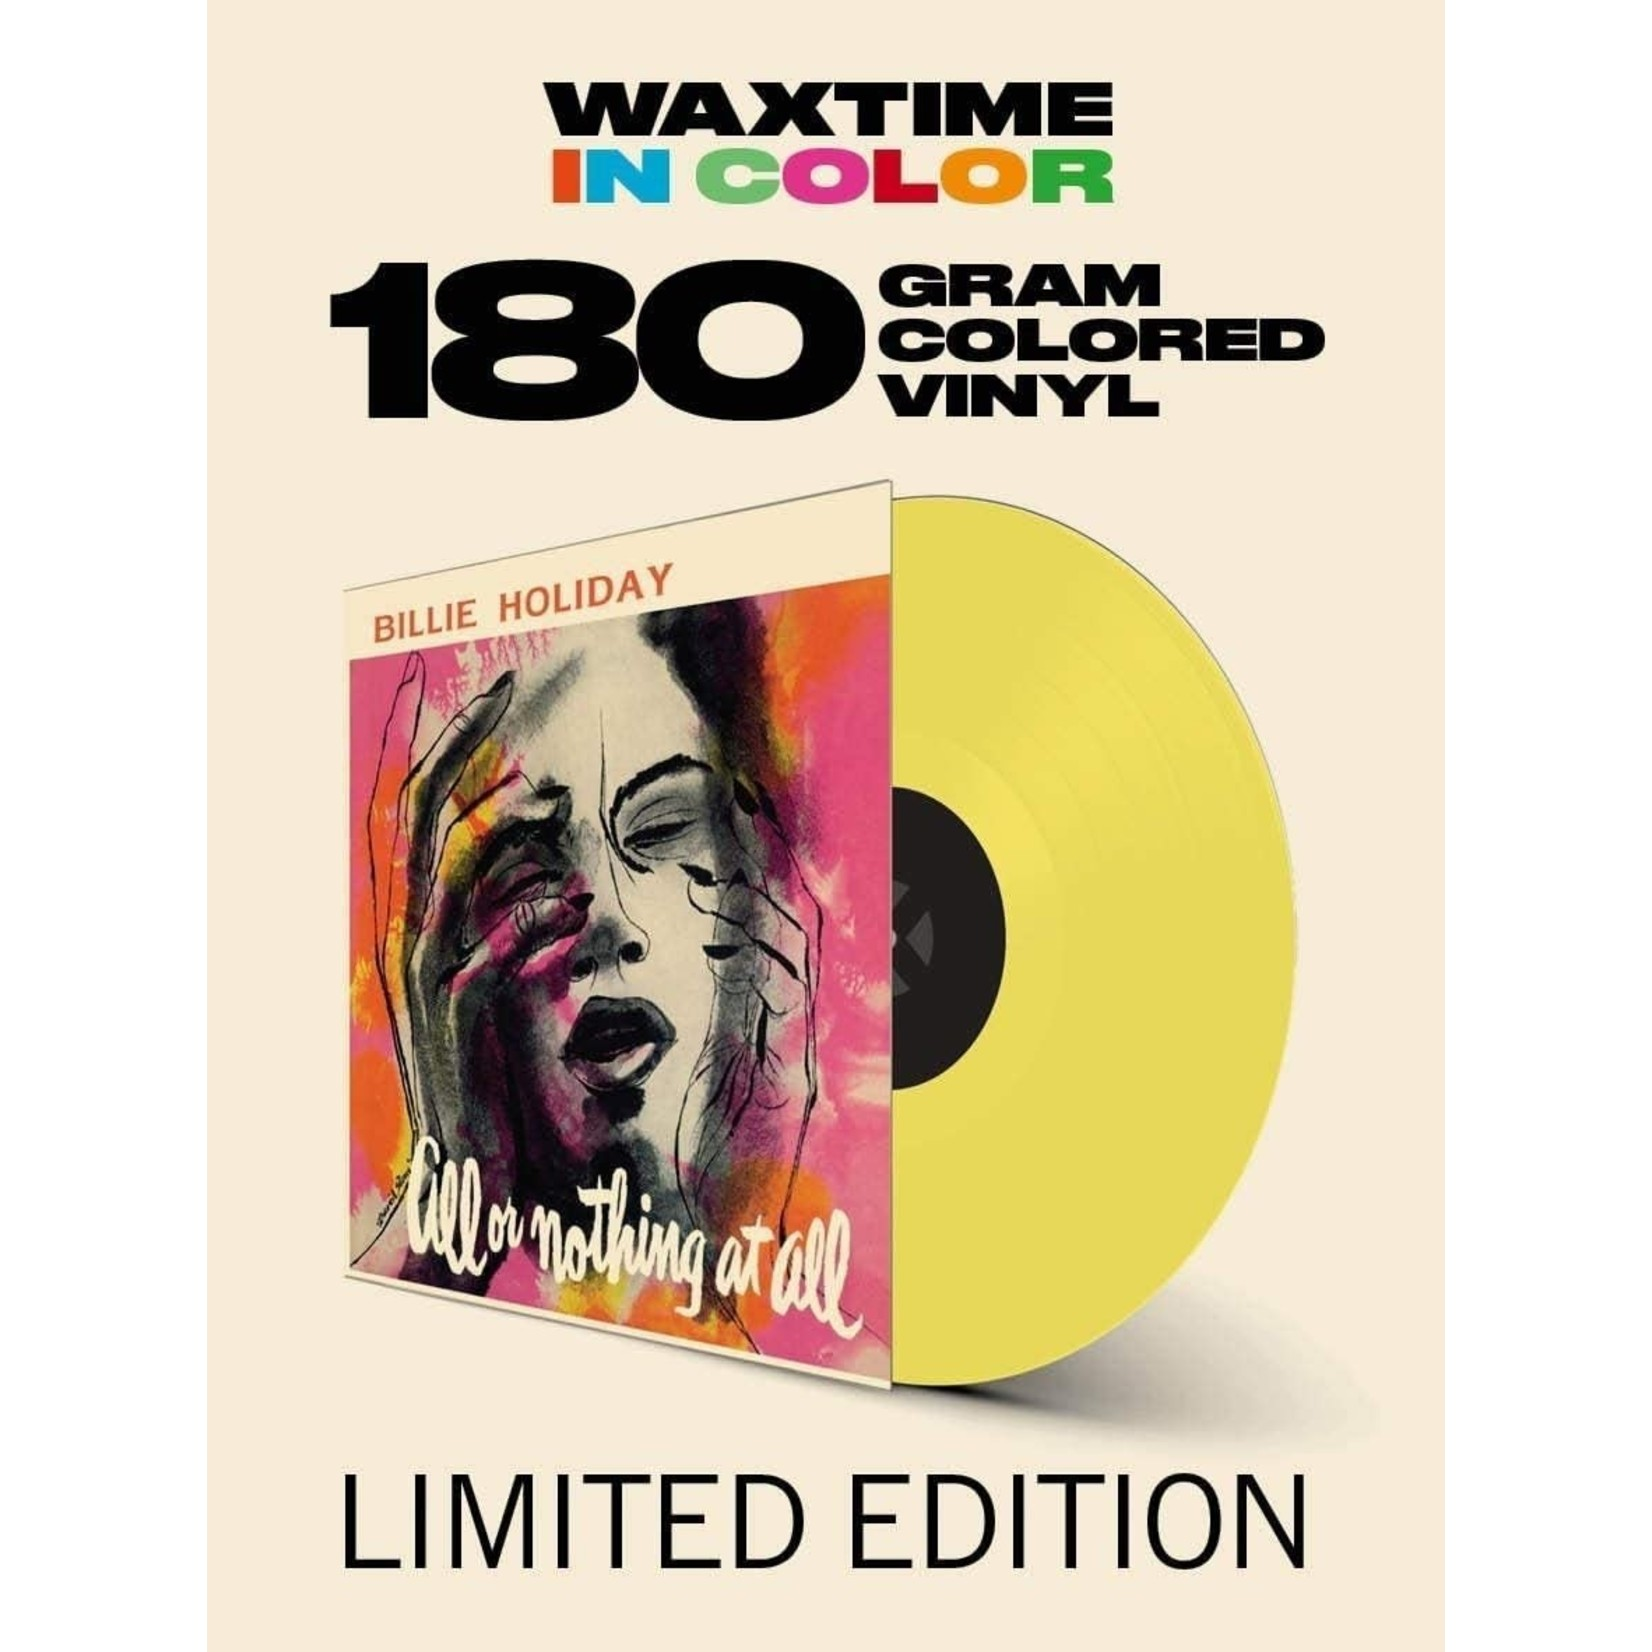 BILLIE HOLIDAY ALL OR NOTHING AT ALL  LTD EDITION YELLOW VINYL + BONUS TRACK